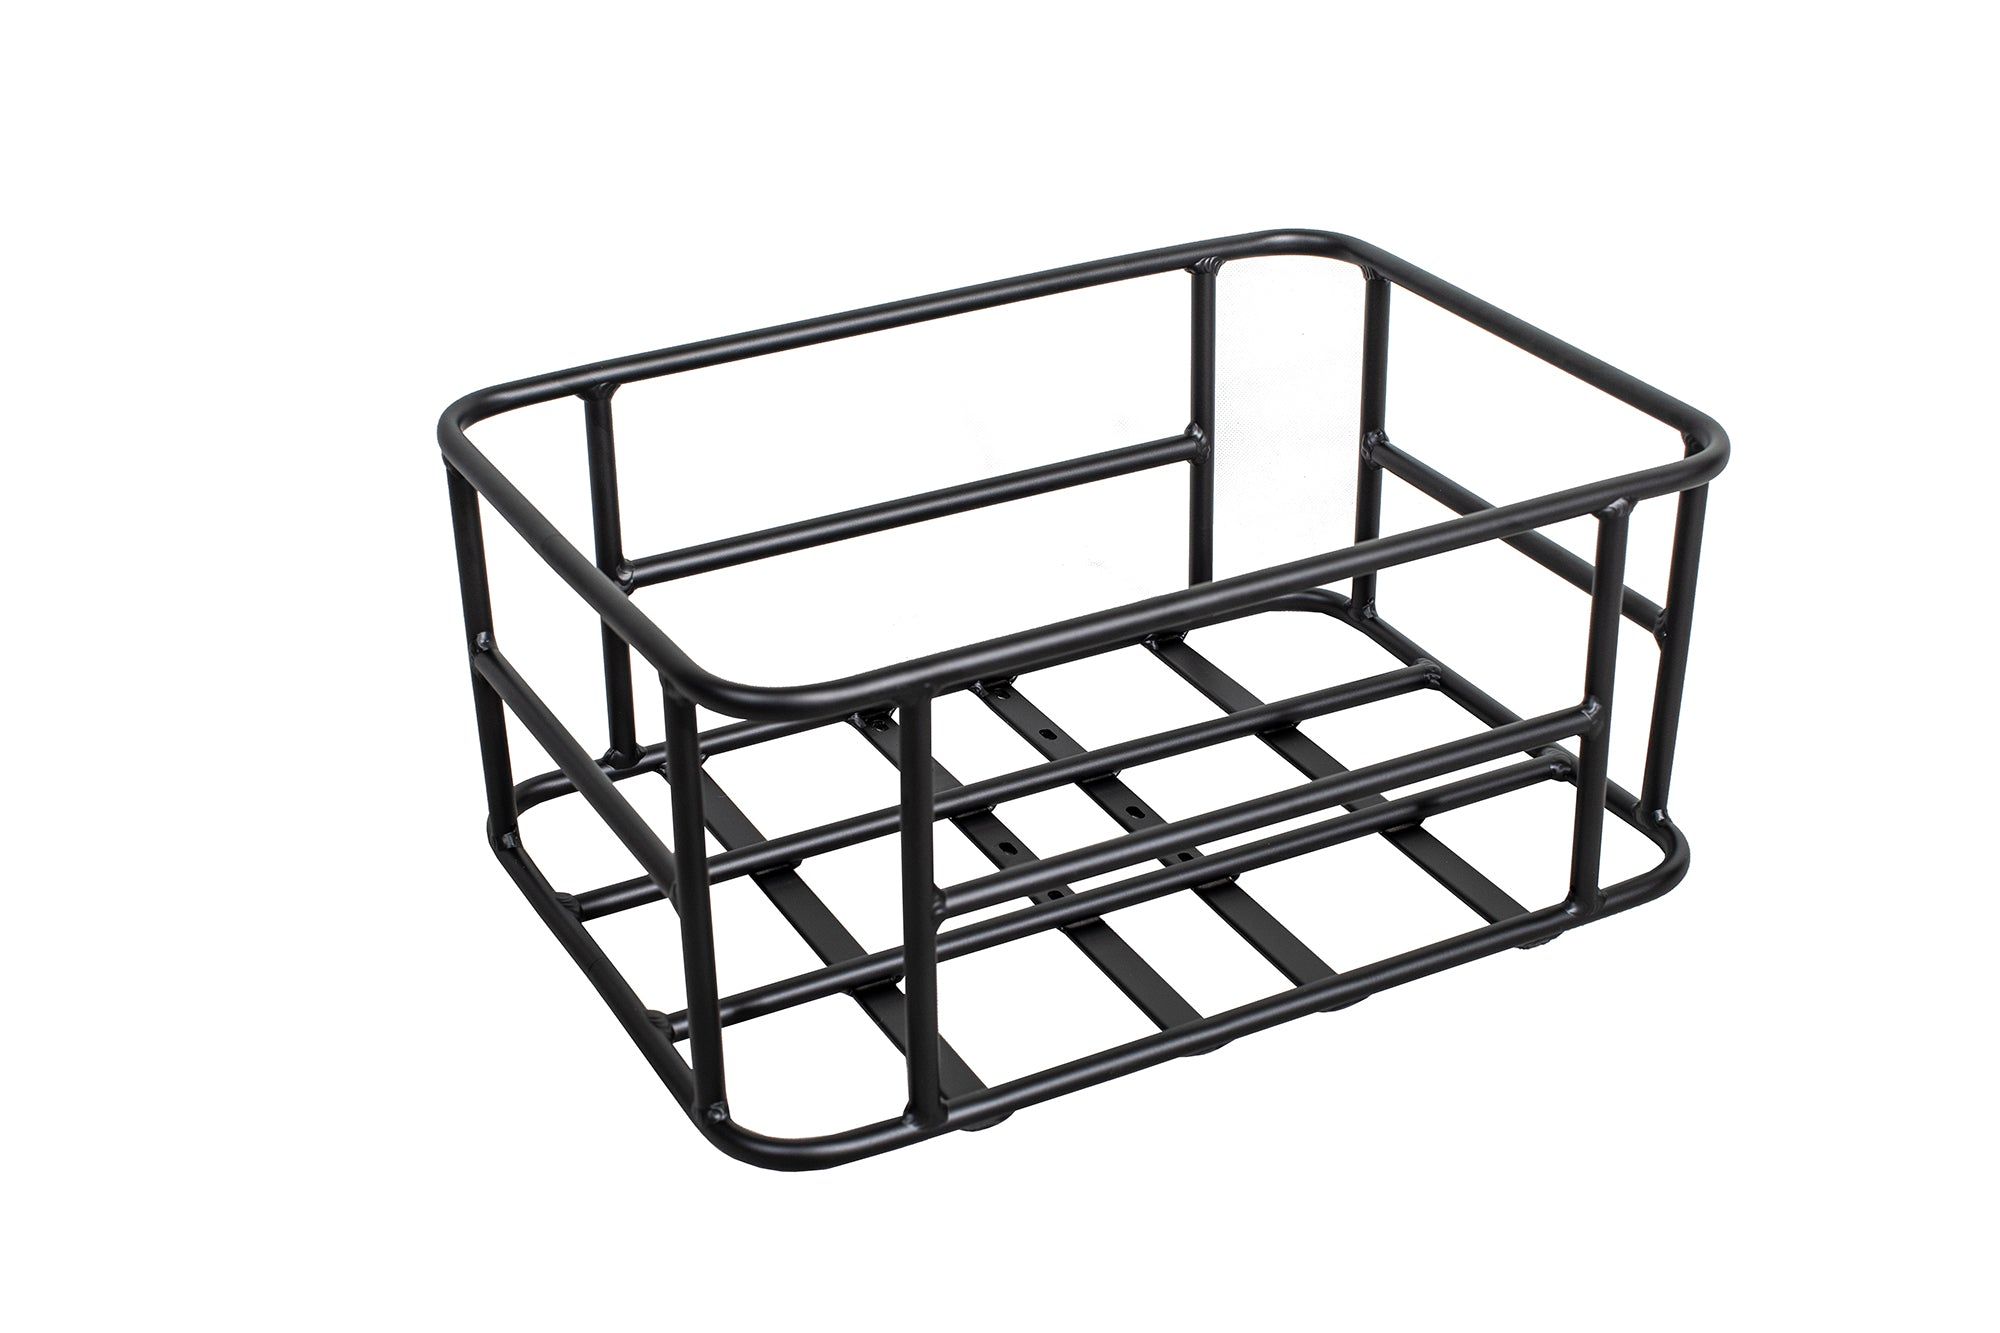 Rear Basket for Runabout - In stock